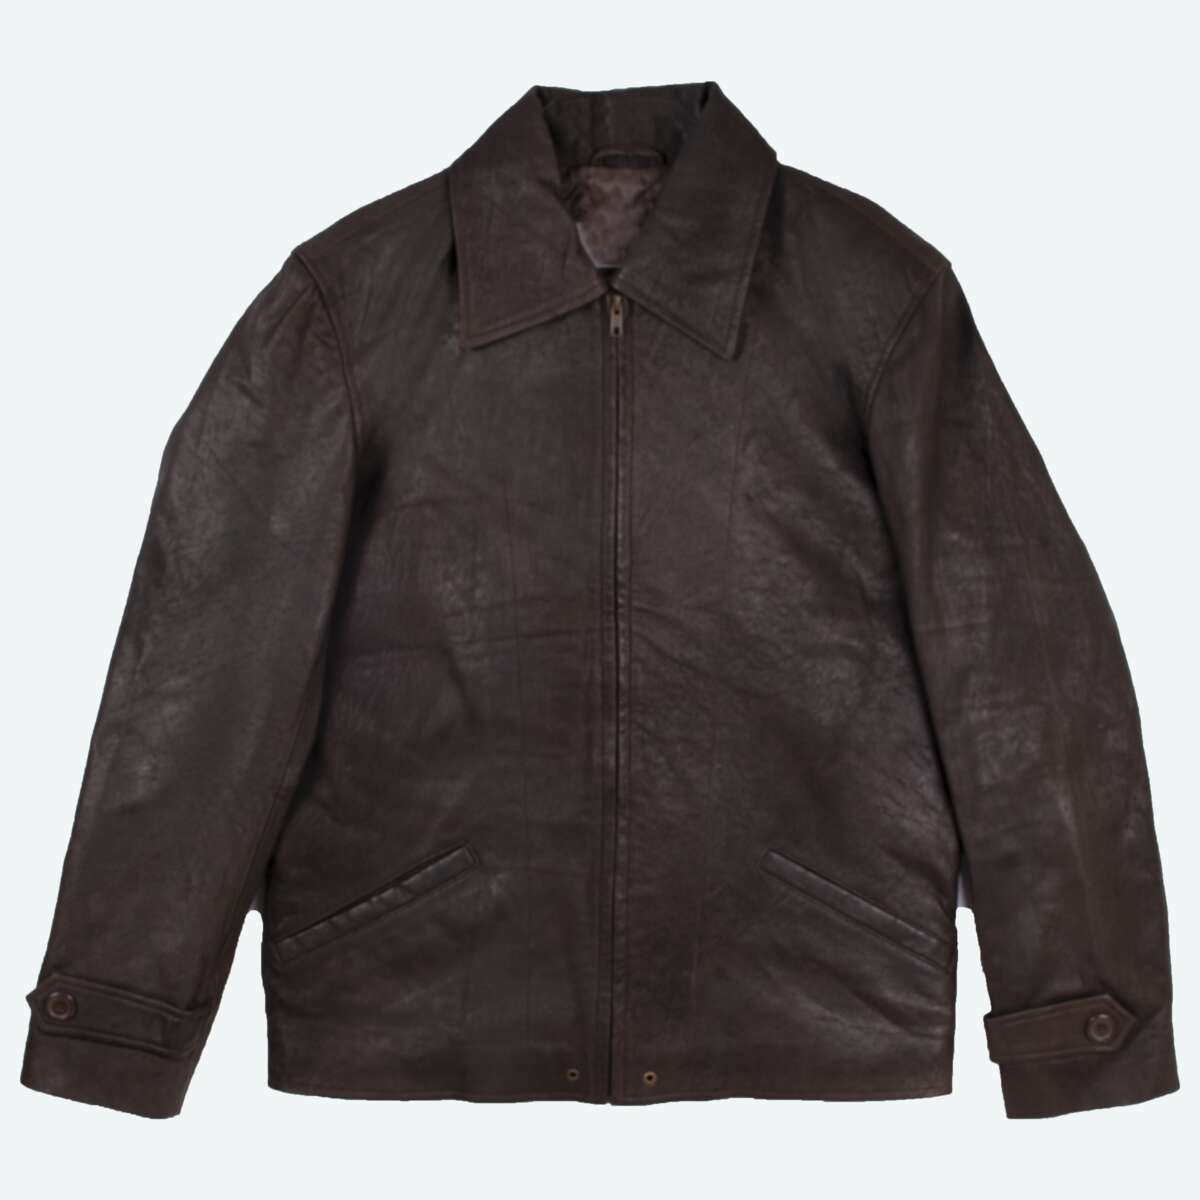 Lightweight Leather Jacket with Shirt Collar